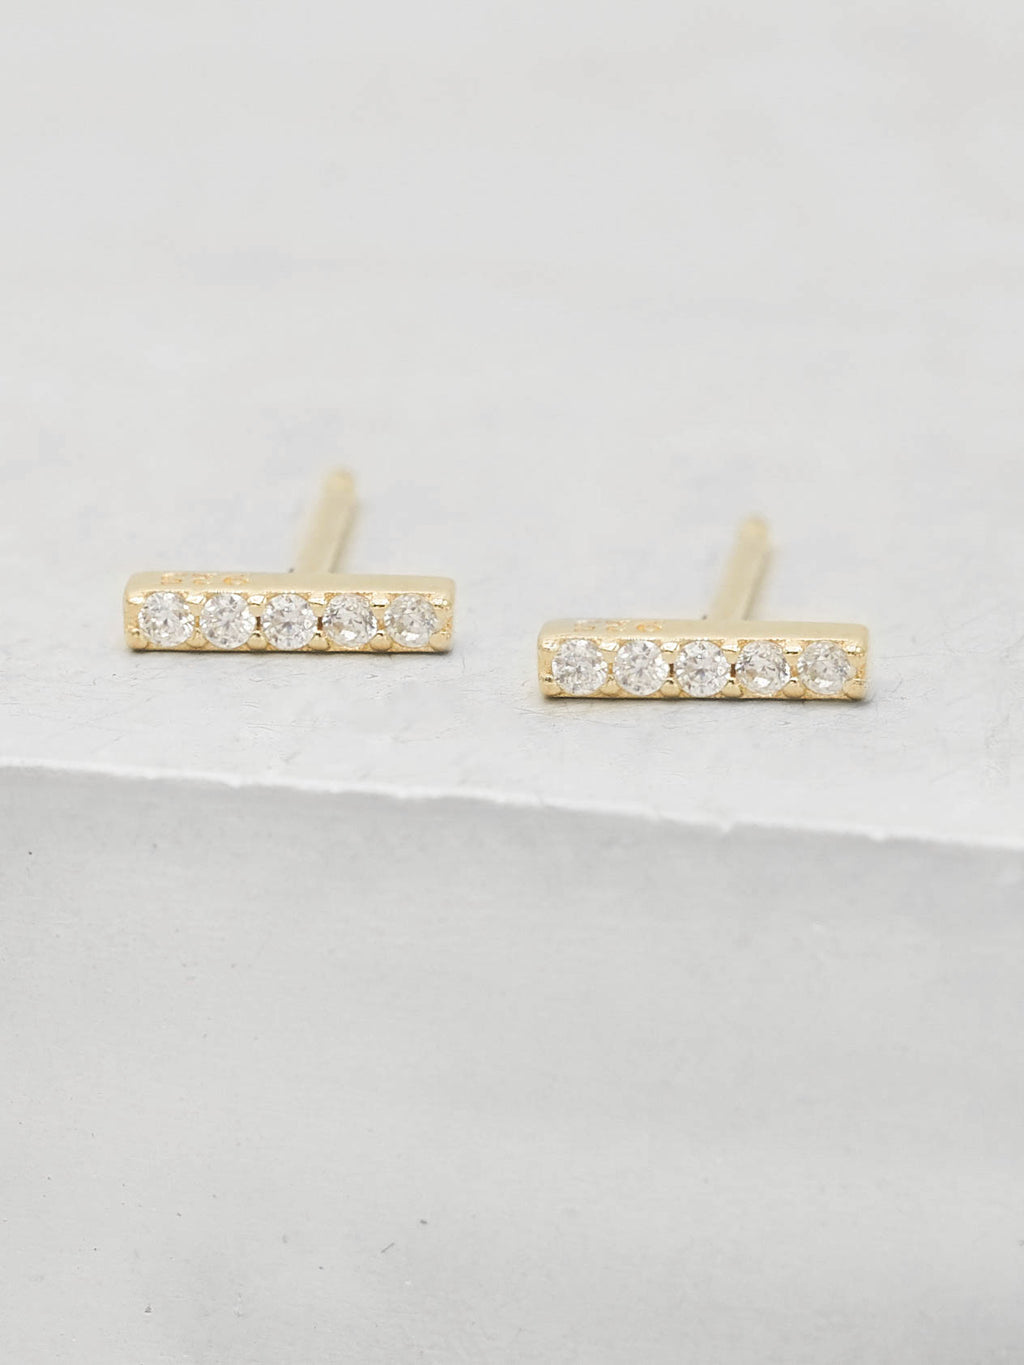 Bar design with CZ Gold Plated Stud Earrings by the Faint Hearted Jewelry